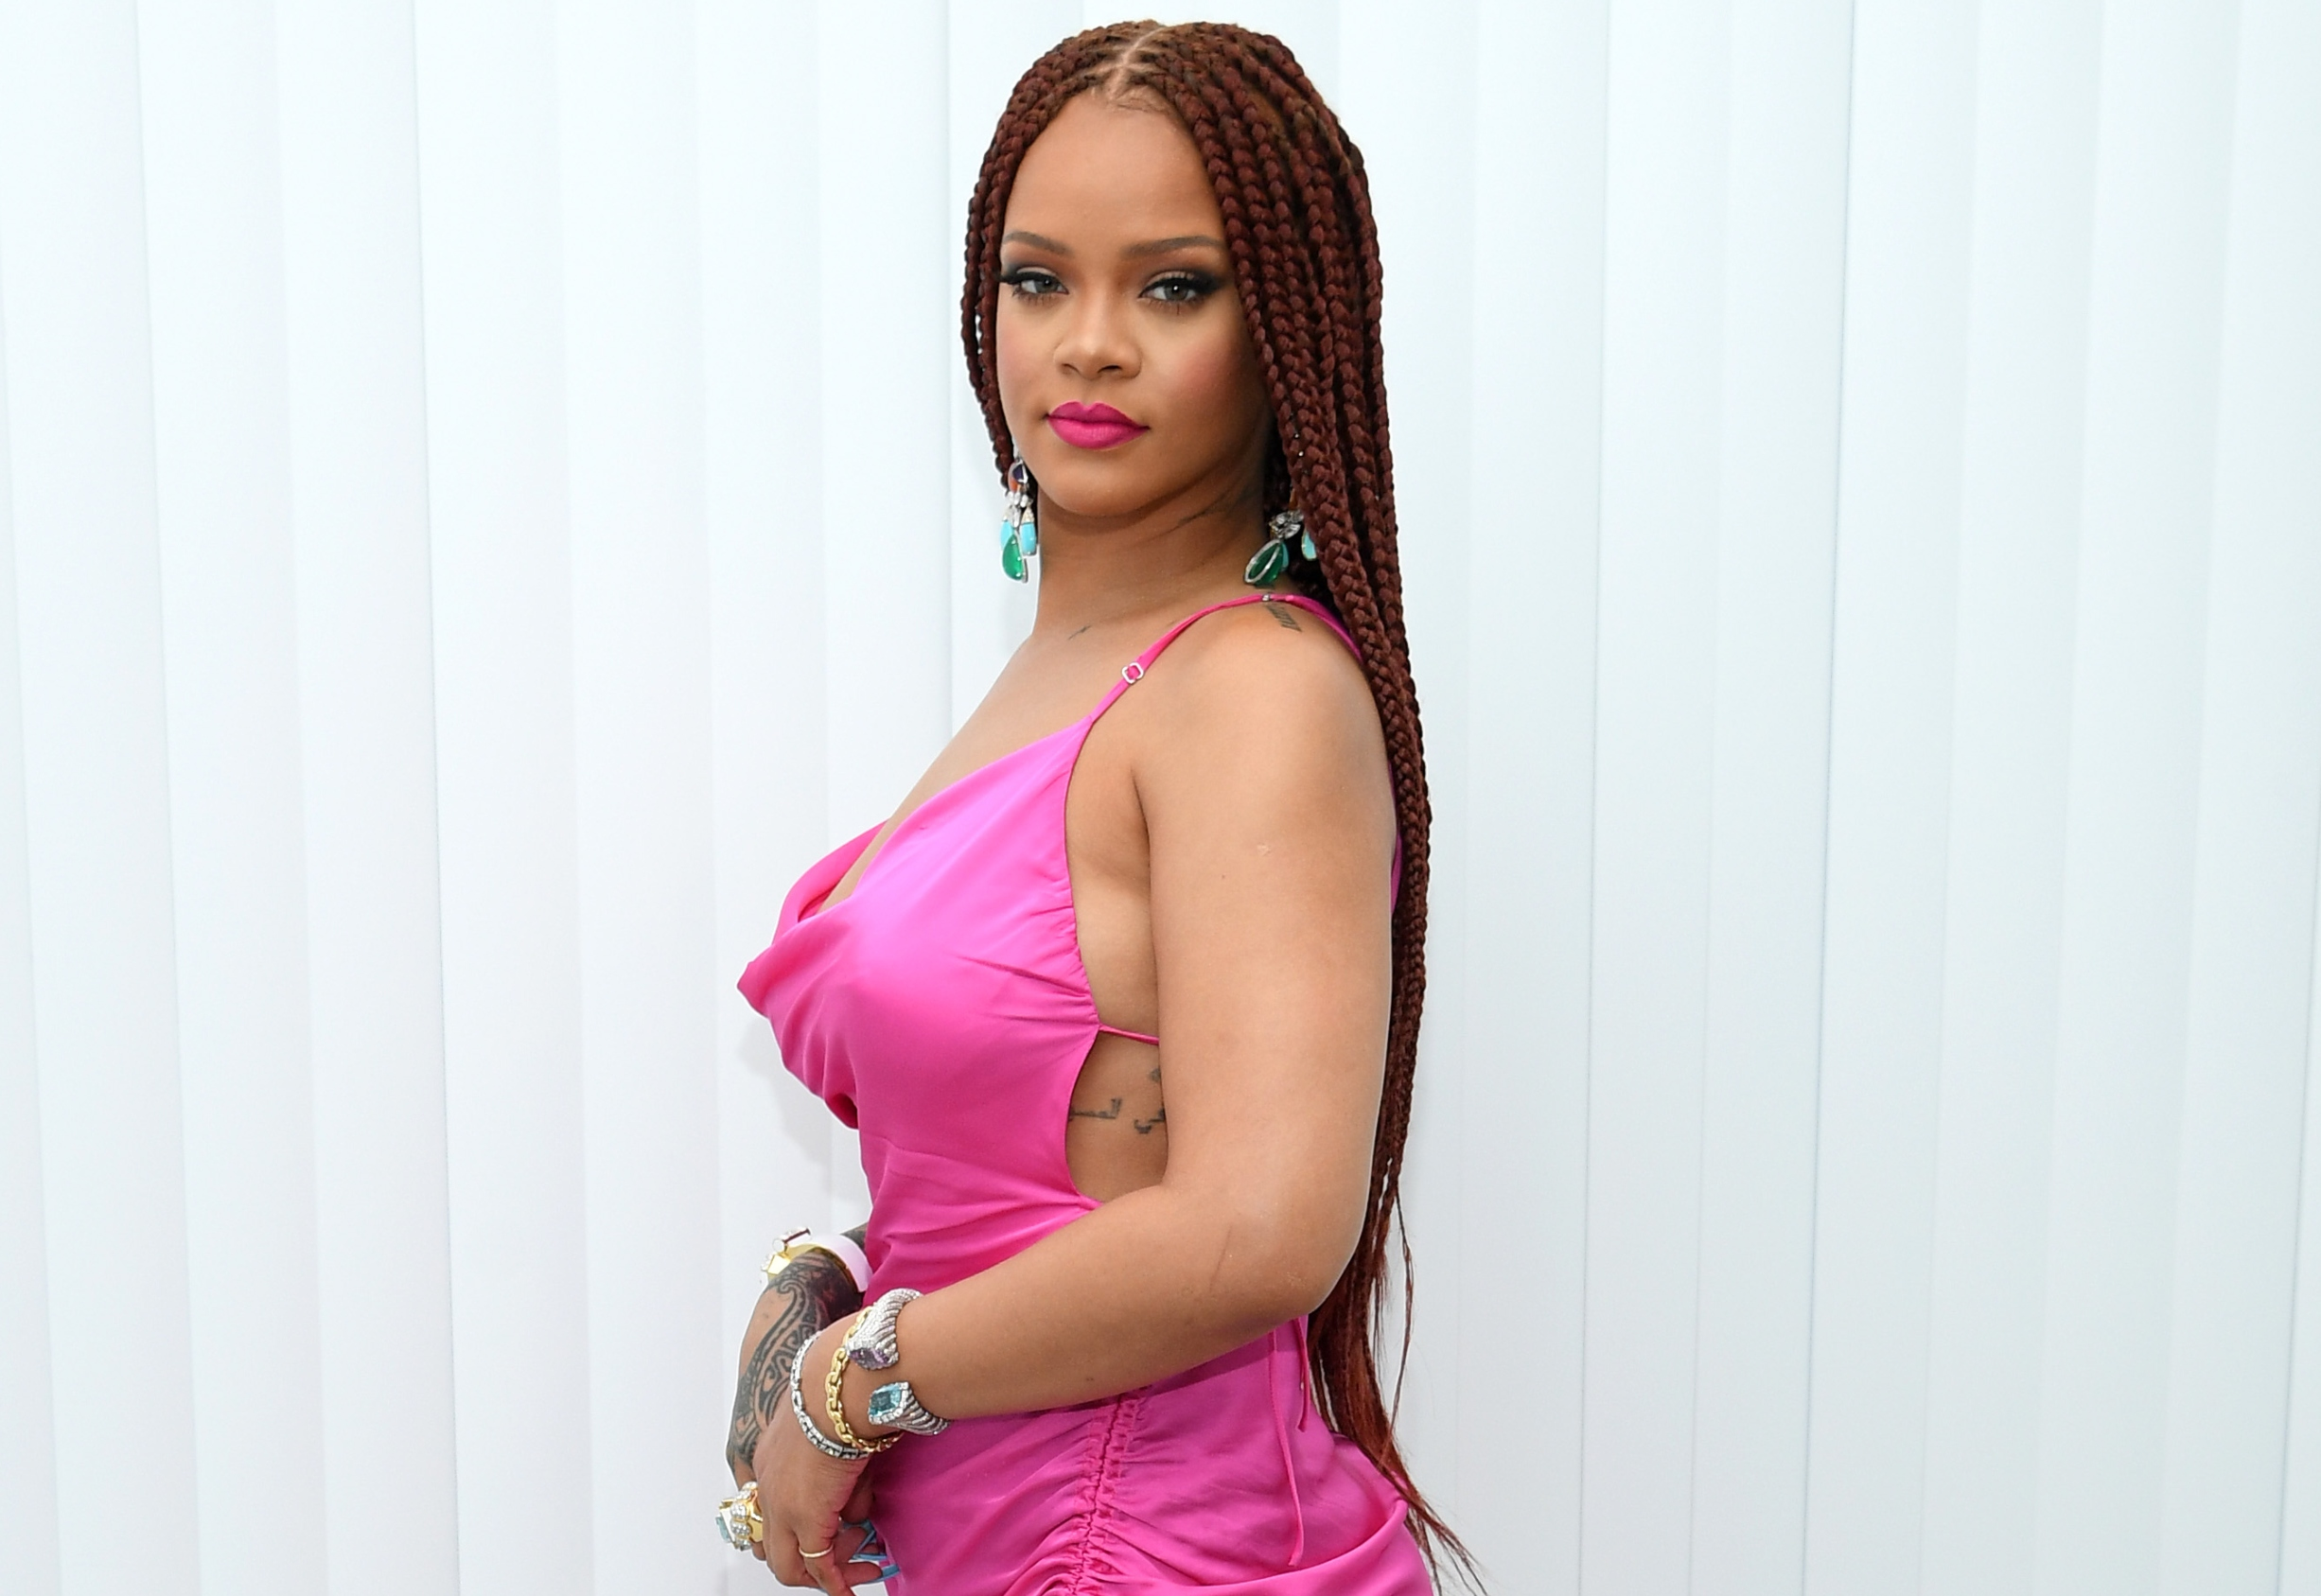 6 tips on success we learned from Rihanna